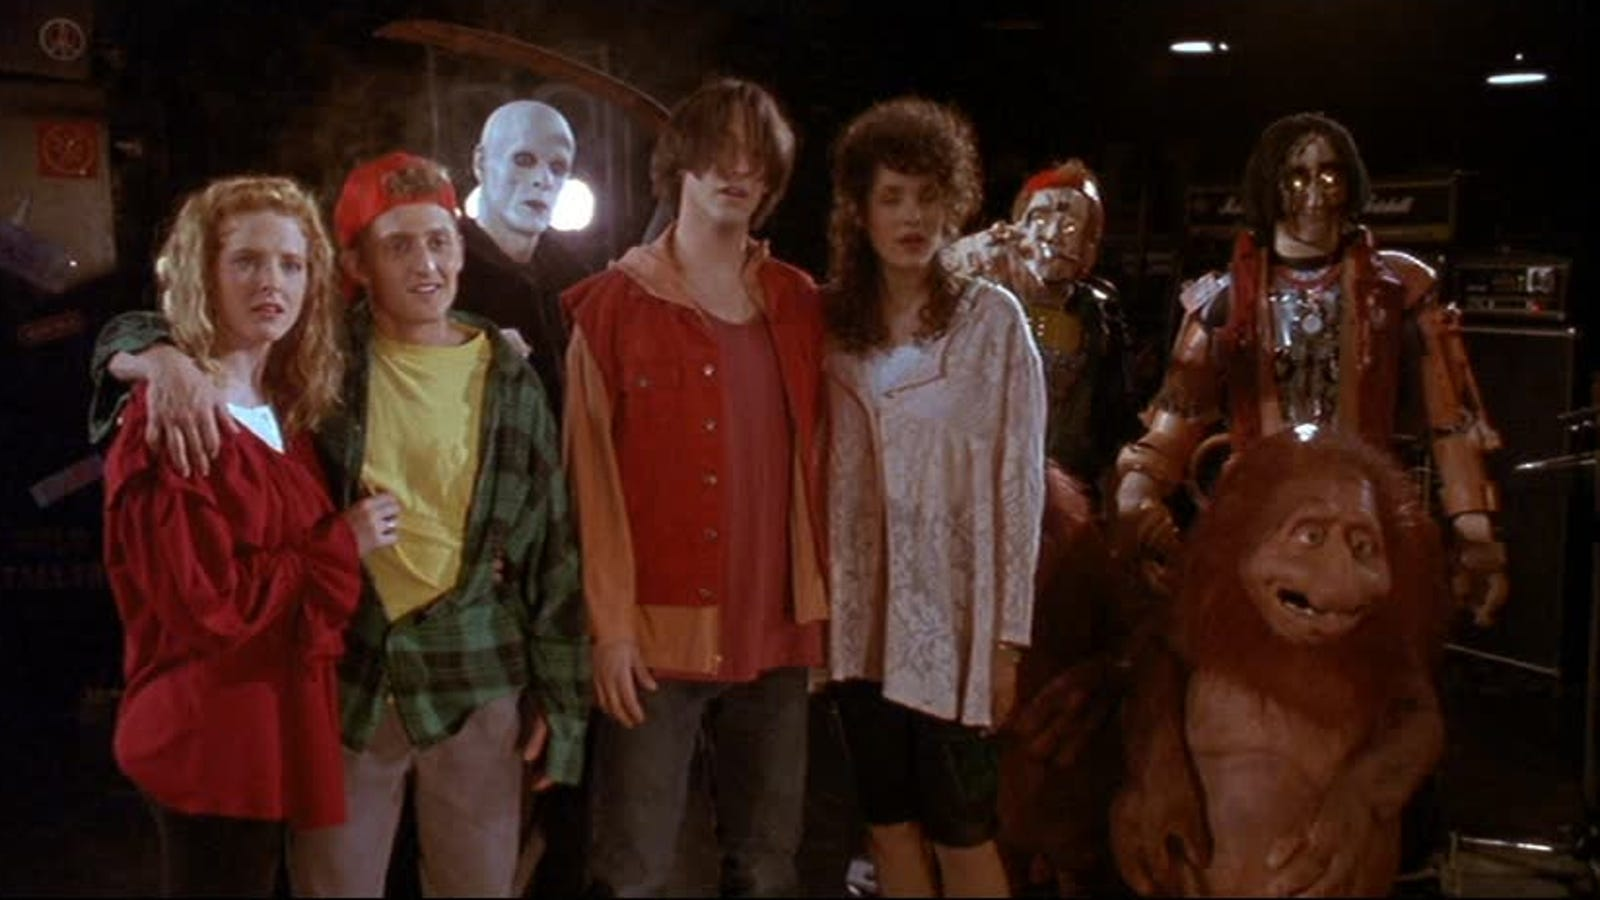 One of the Most Memorable Bill & Ted's Bogus Journey